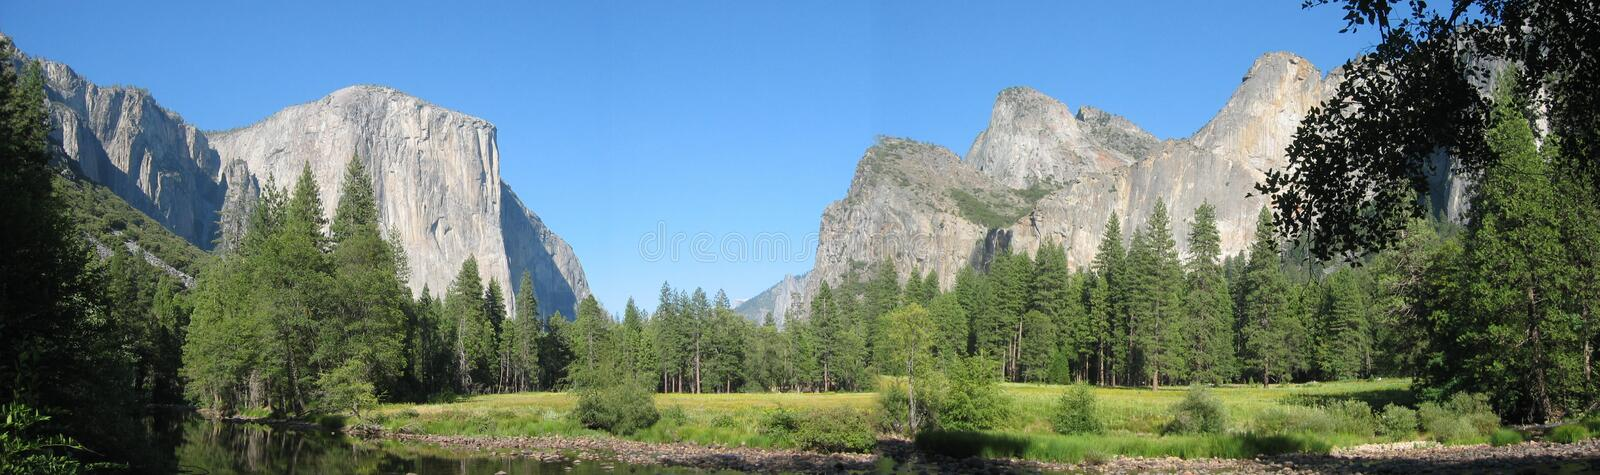 Yosemite Valley. Panoramic royalty free stock photo